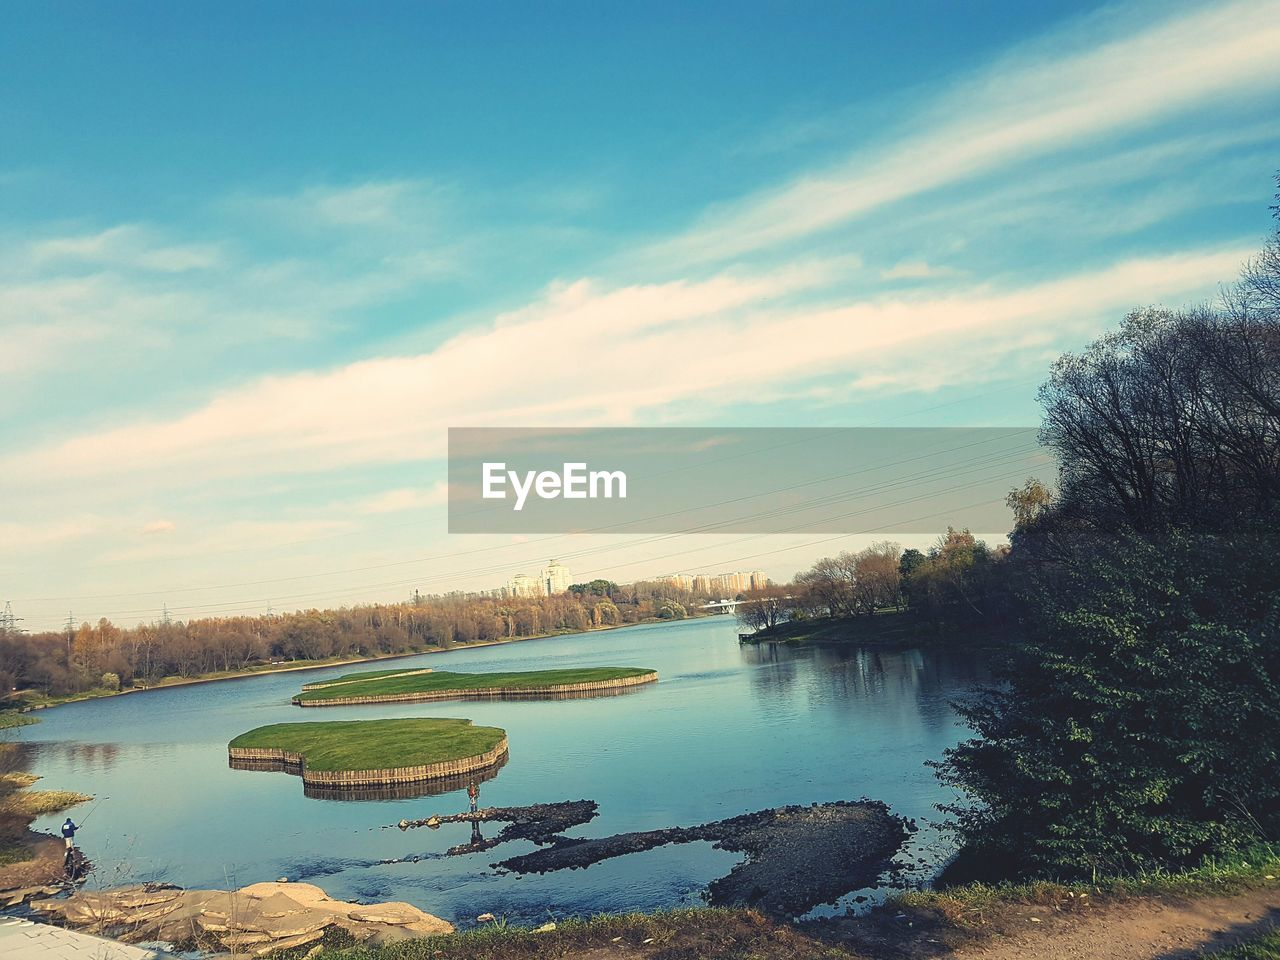 water, sky, no people, tree, nature, river, tranquility, outdoors, cloud - sky, scenics, beauty in nature, architecture, built structure, day, city, cityscape